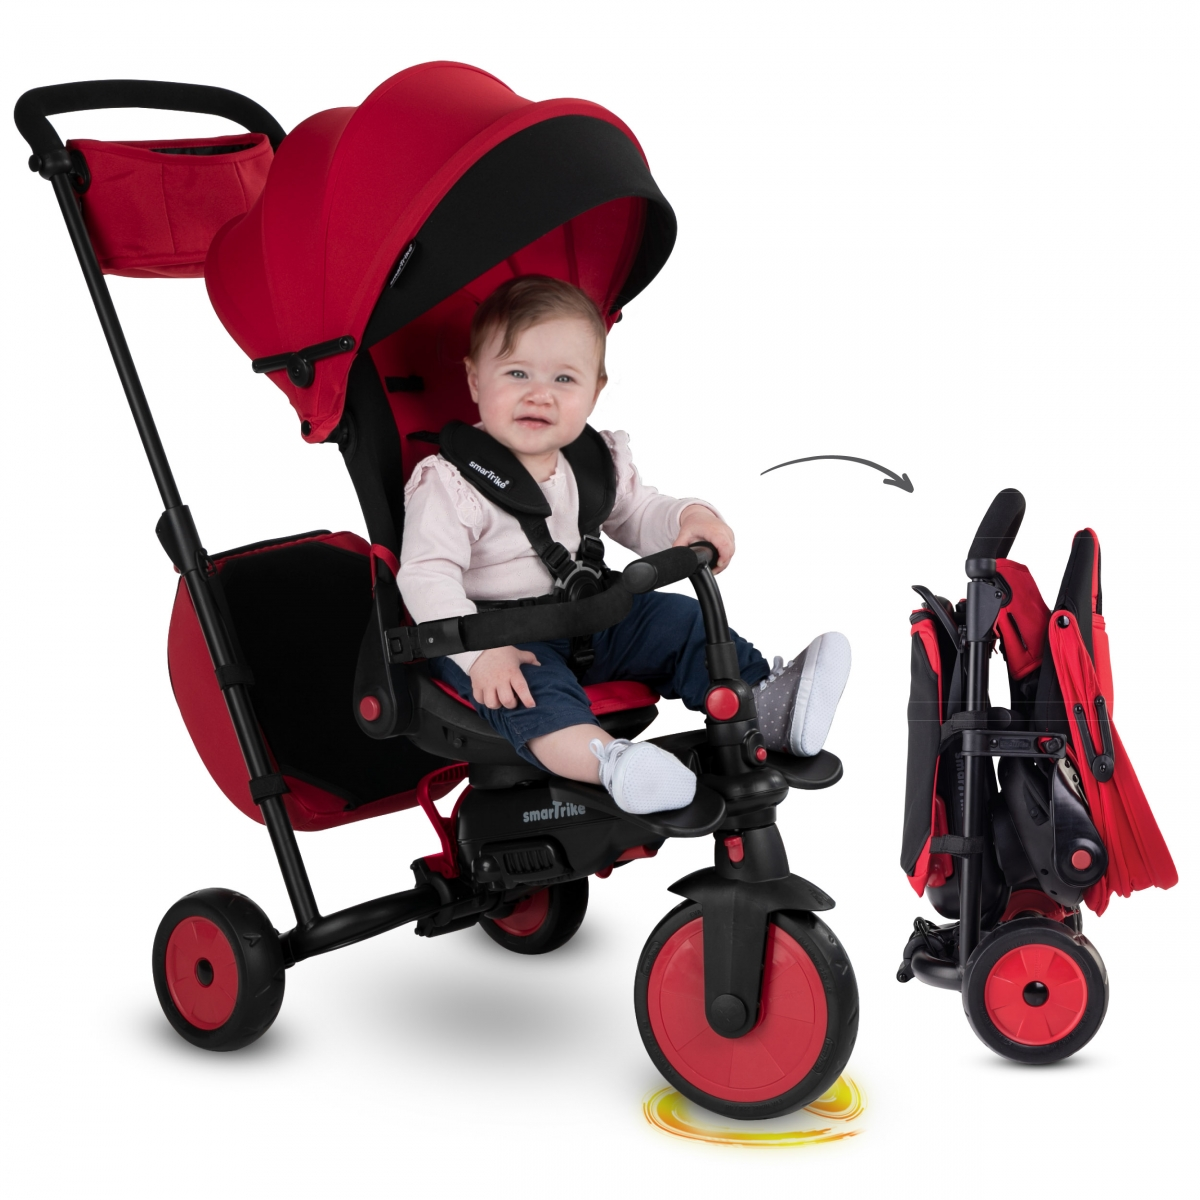 Picture of SmarTrike 8in1 Folding Baby Tricycle STR7-Red (NEW)